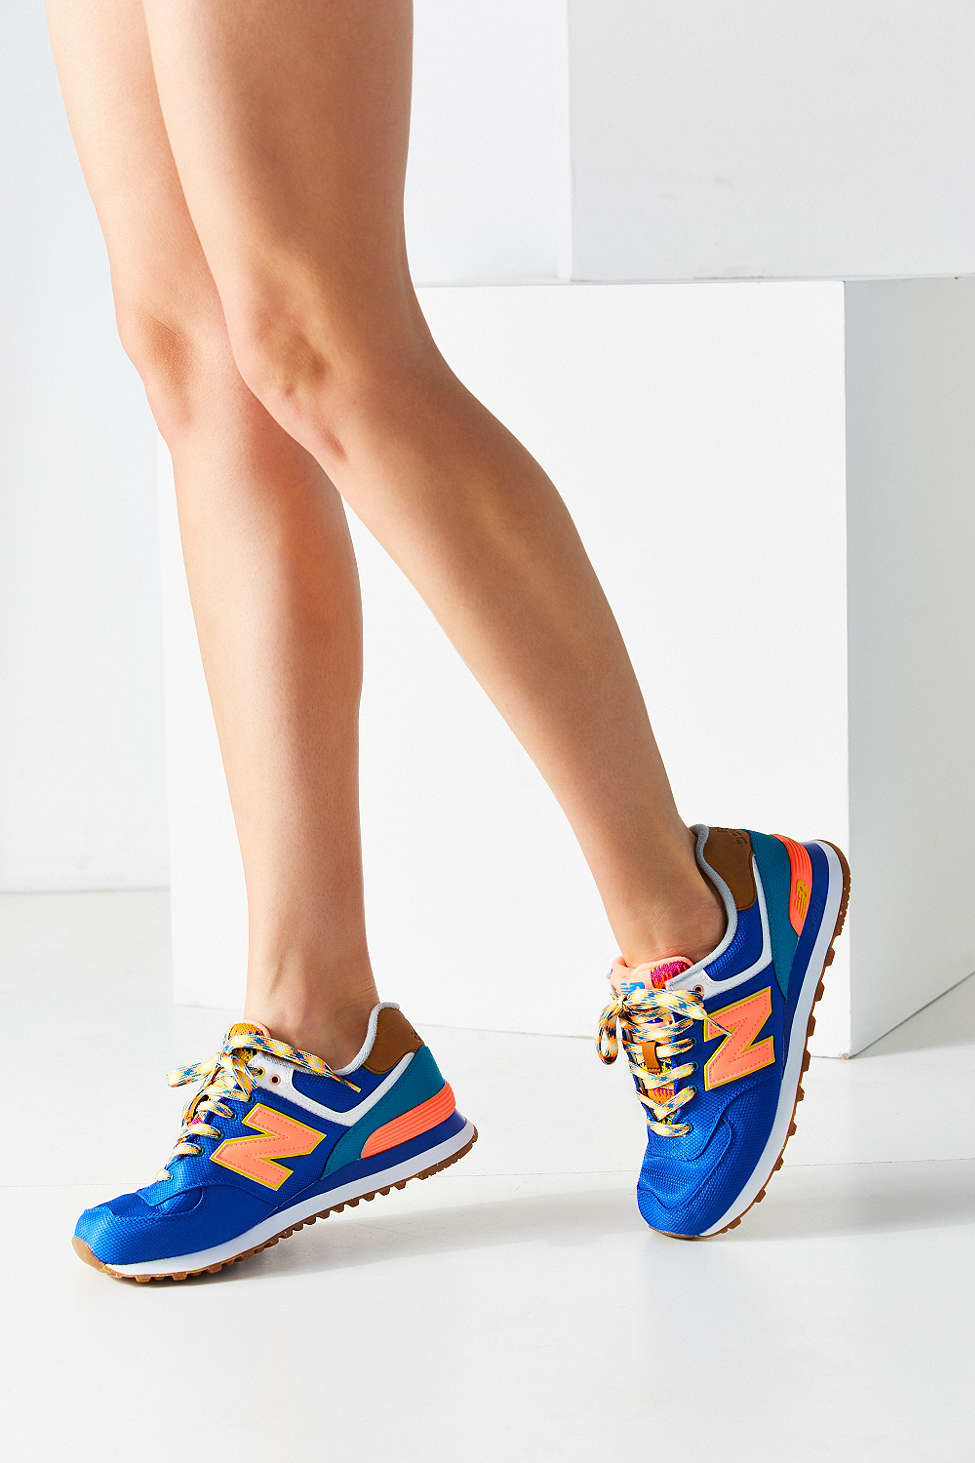 new balance wedge sneaker